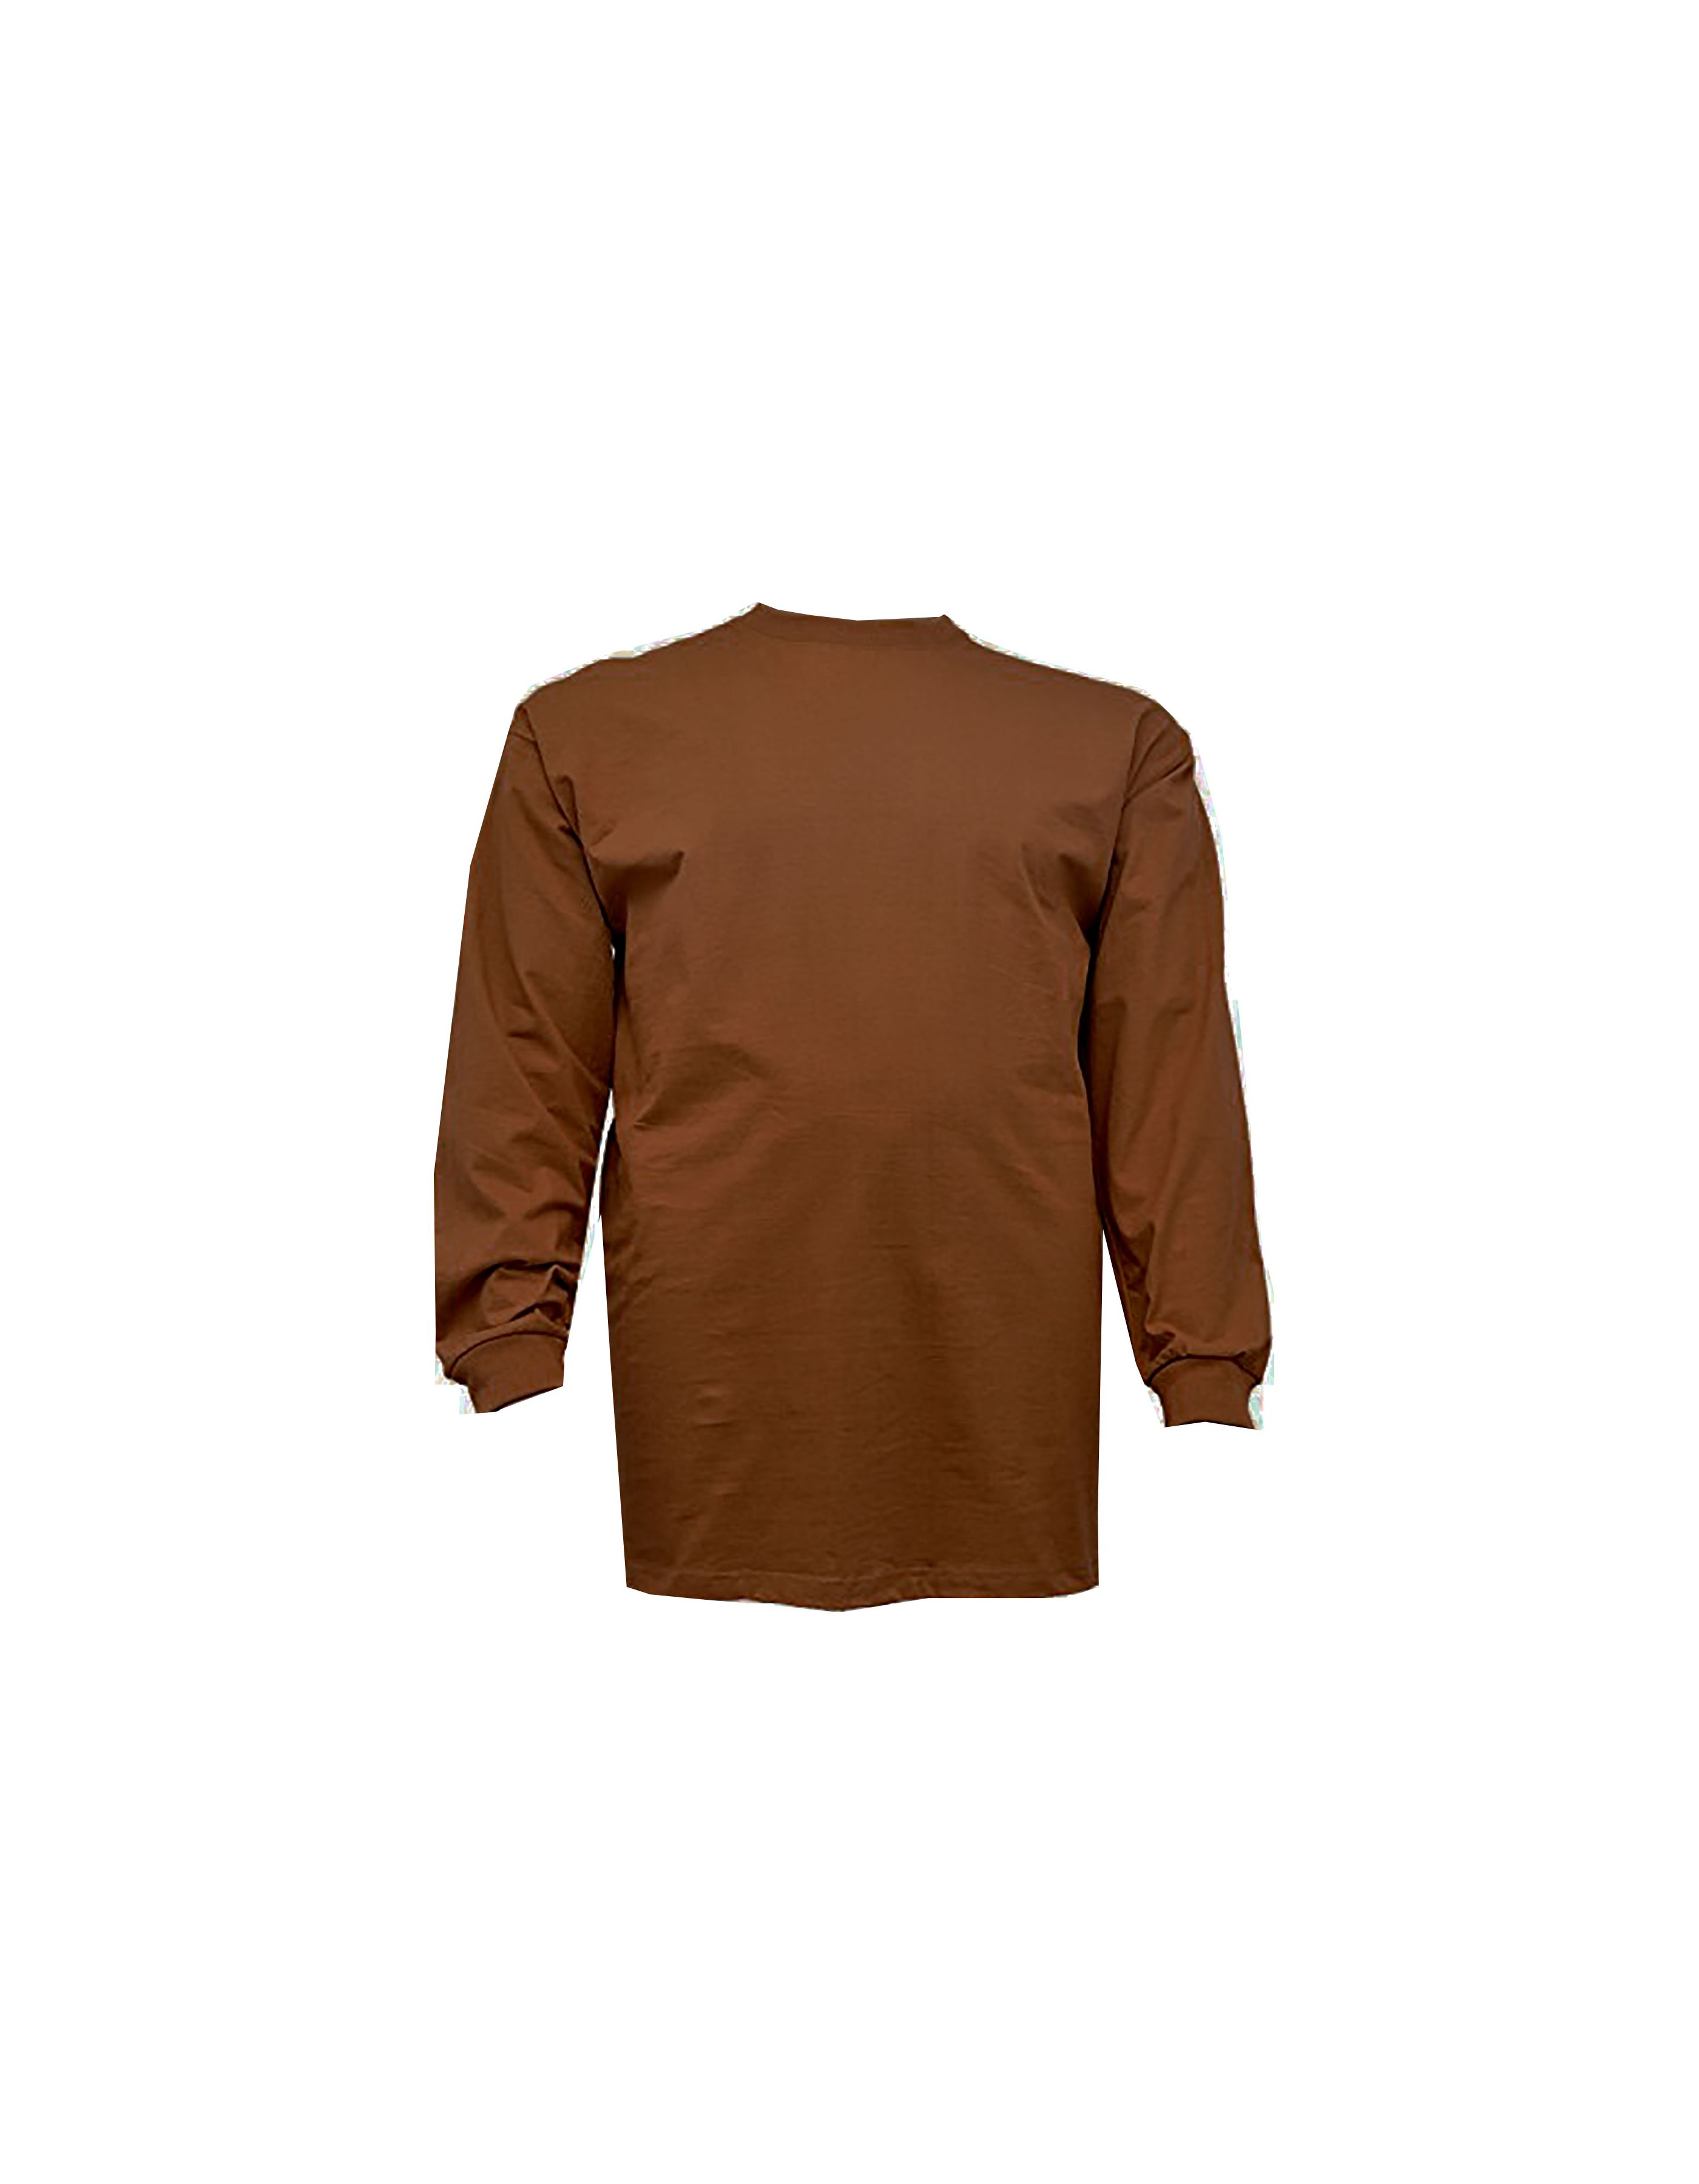 T SHIRT GRANDE TAILLE MANCHES LONGUES US